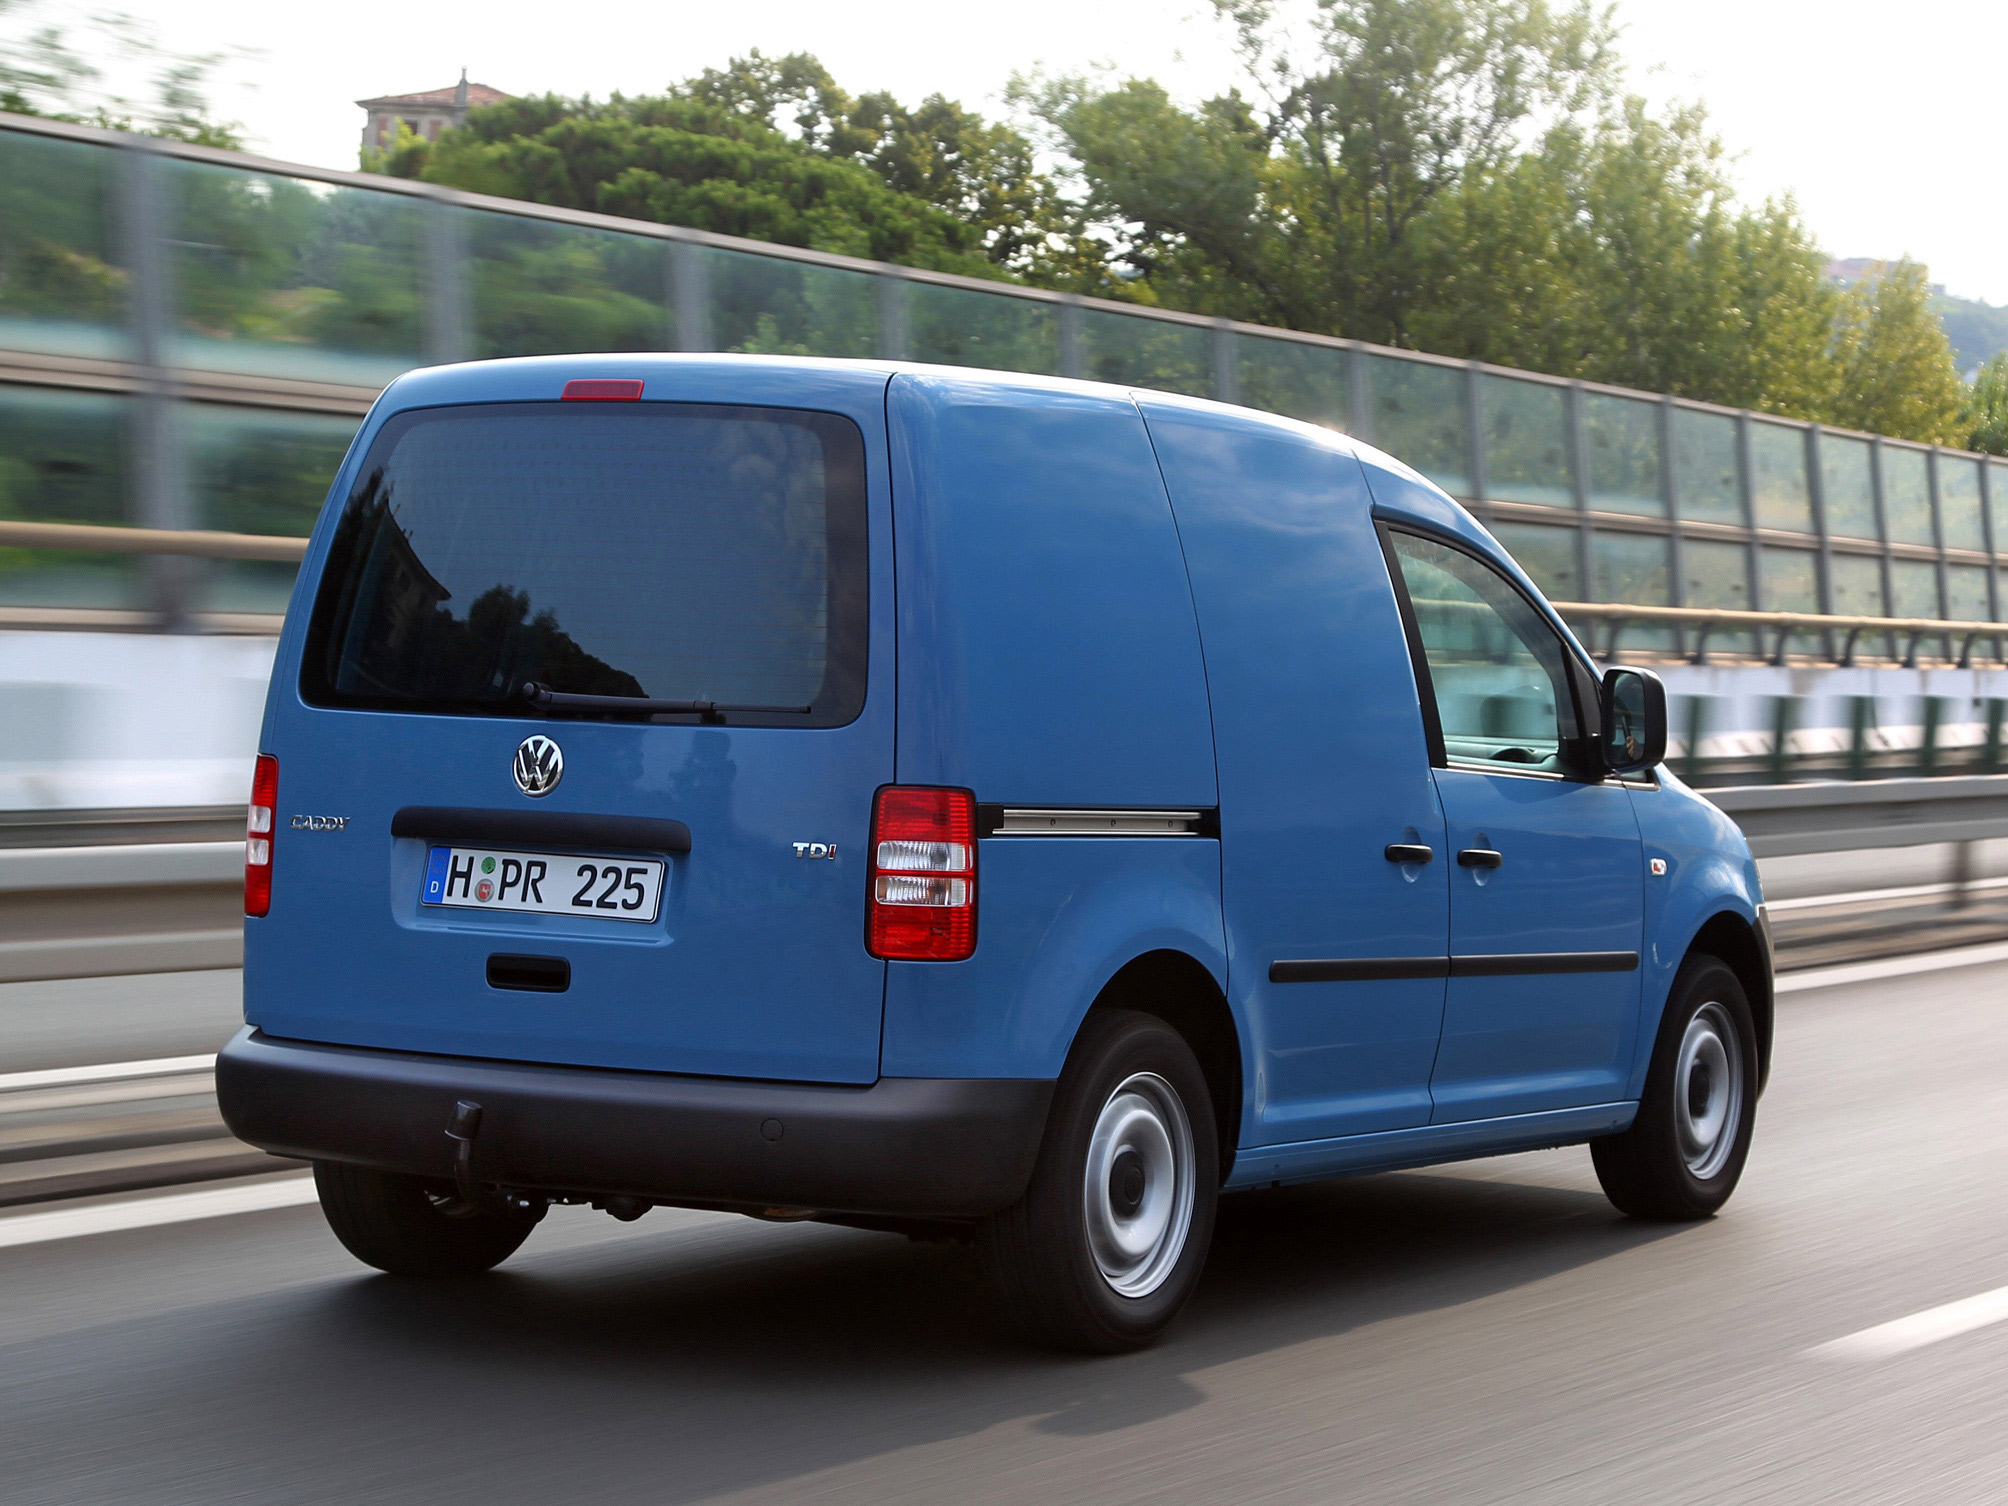 Фото автомобиля Volkswagen Caddy фургон